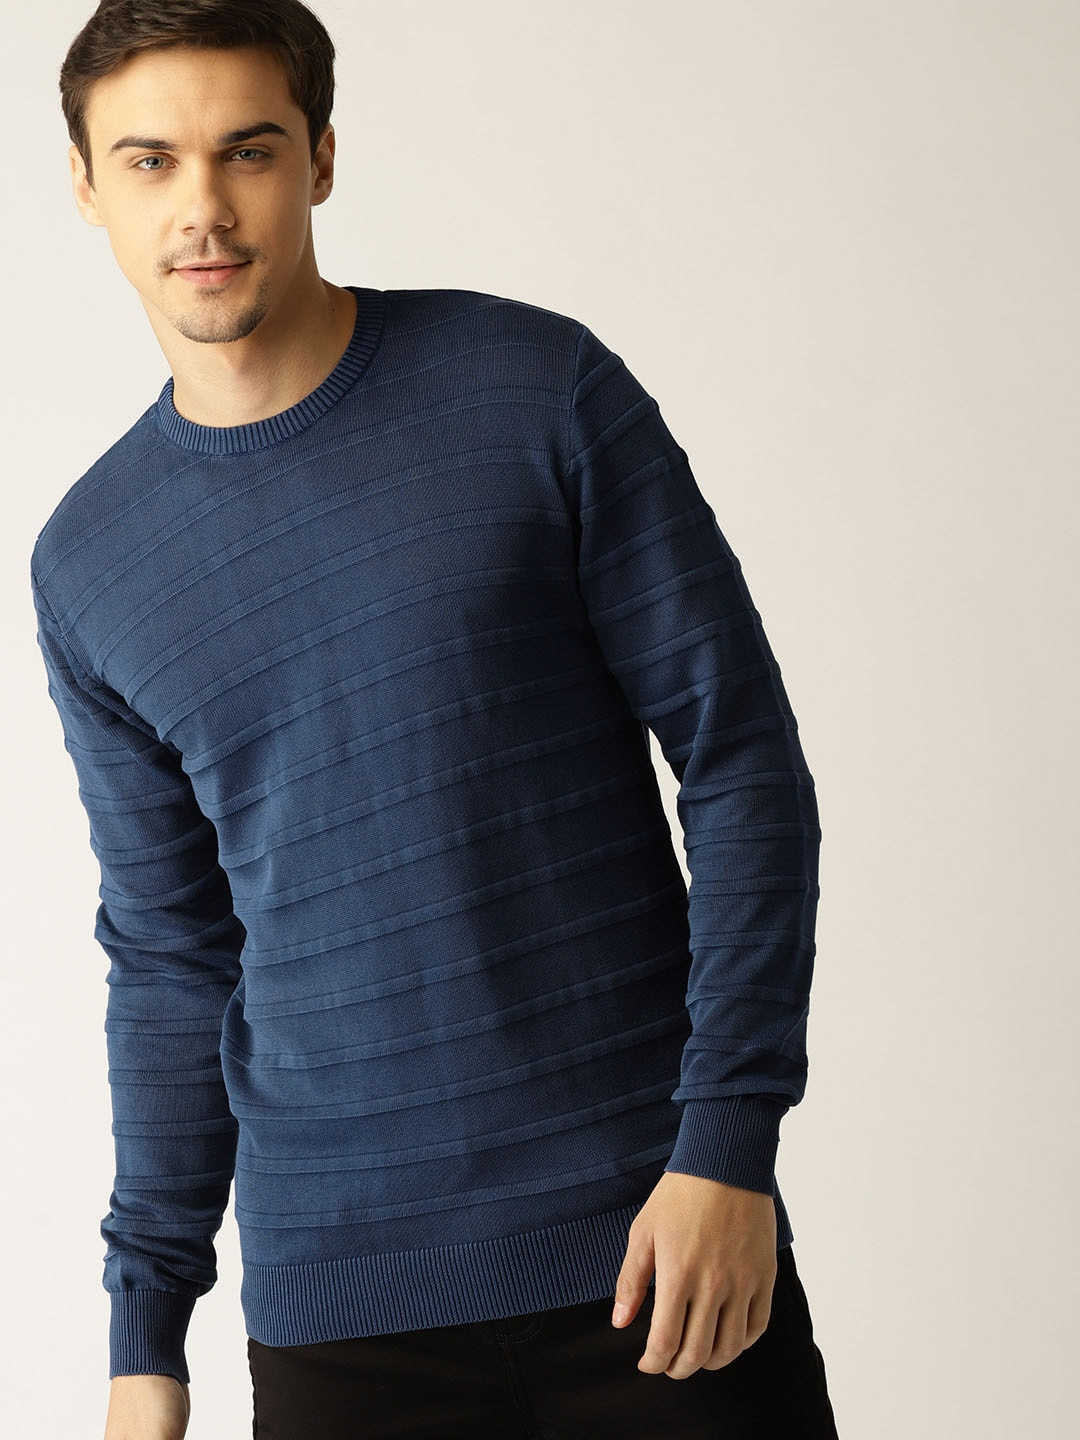 64e98229b United Colors Of Benetton Sweaters - Buy United Colors Of Benetton Sweaters  Online in India